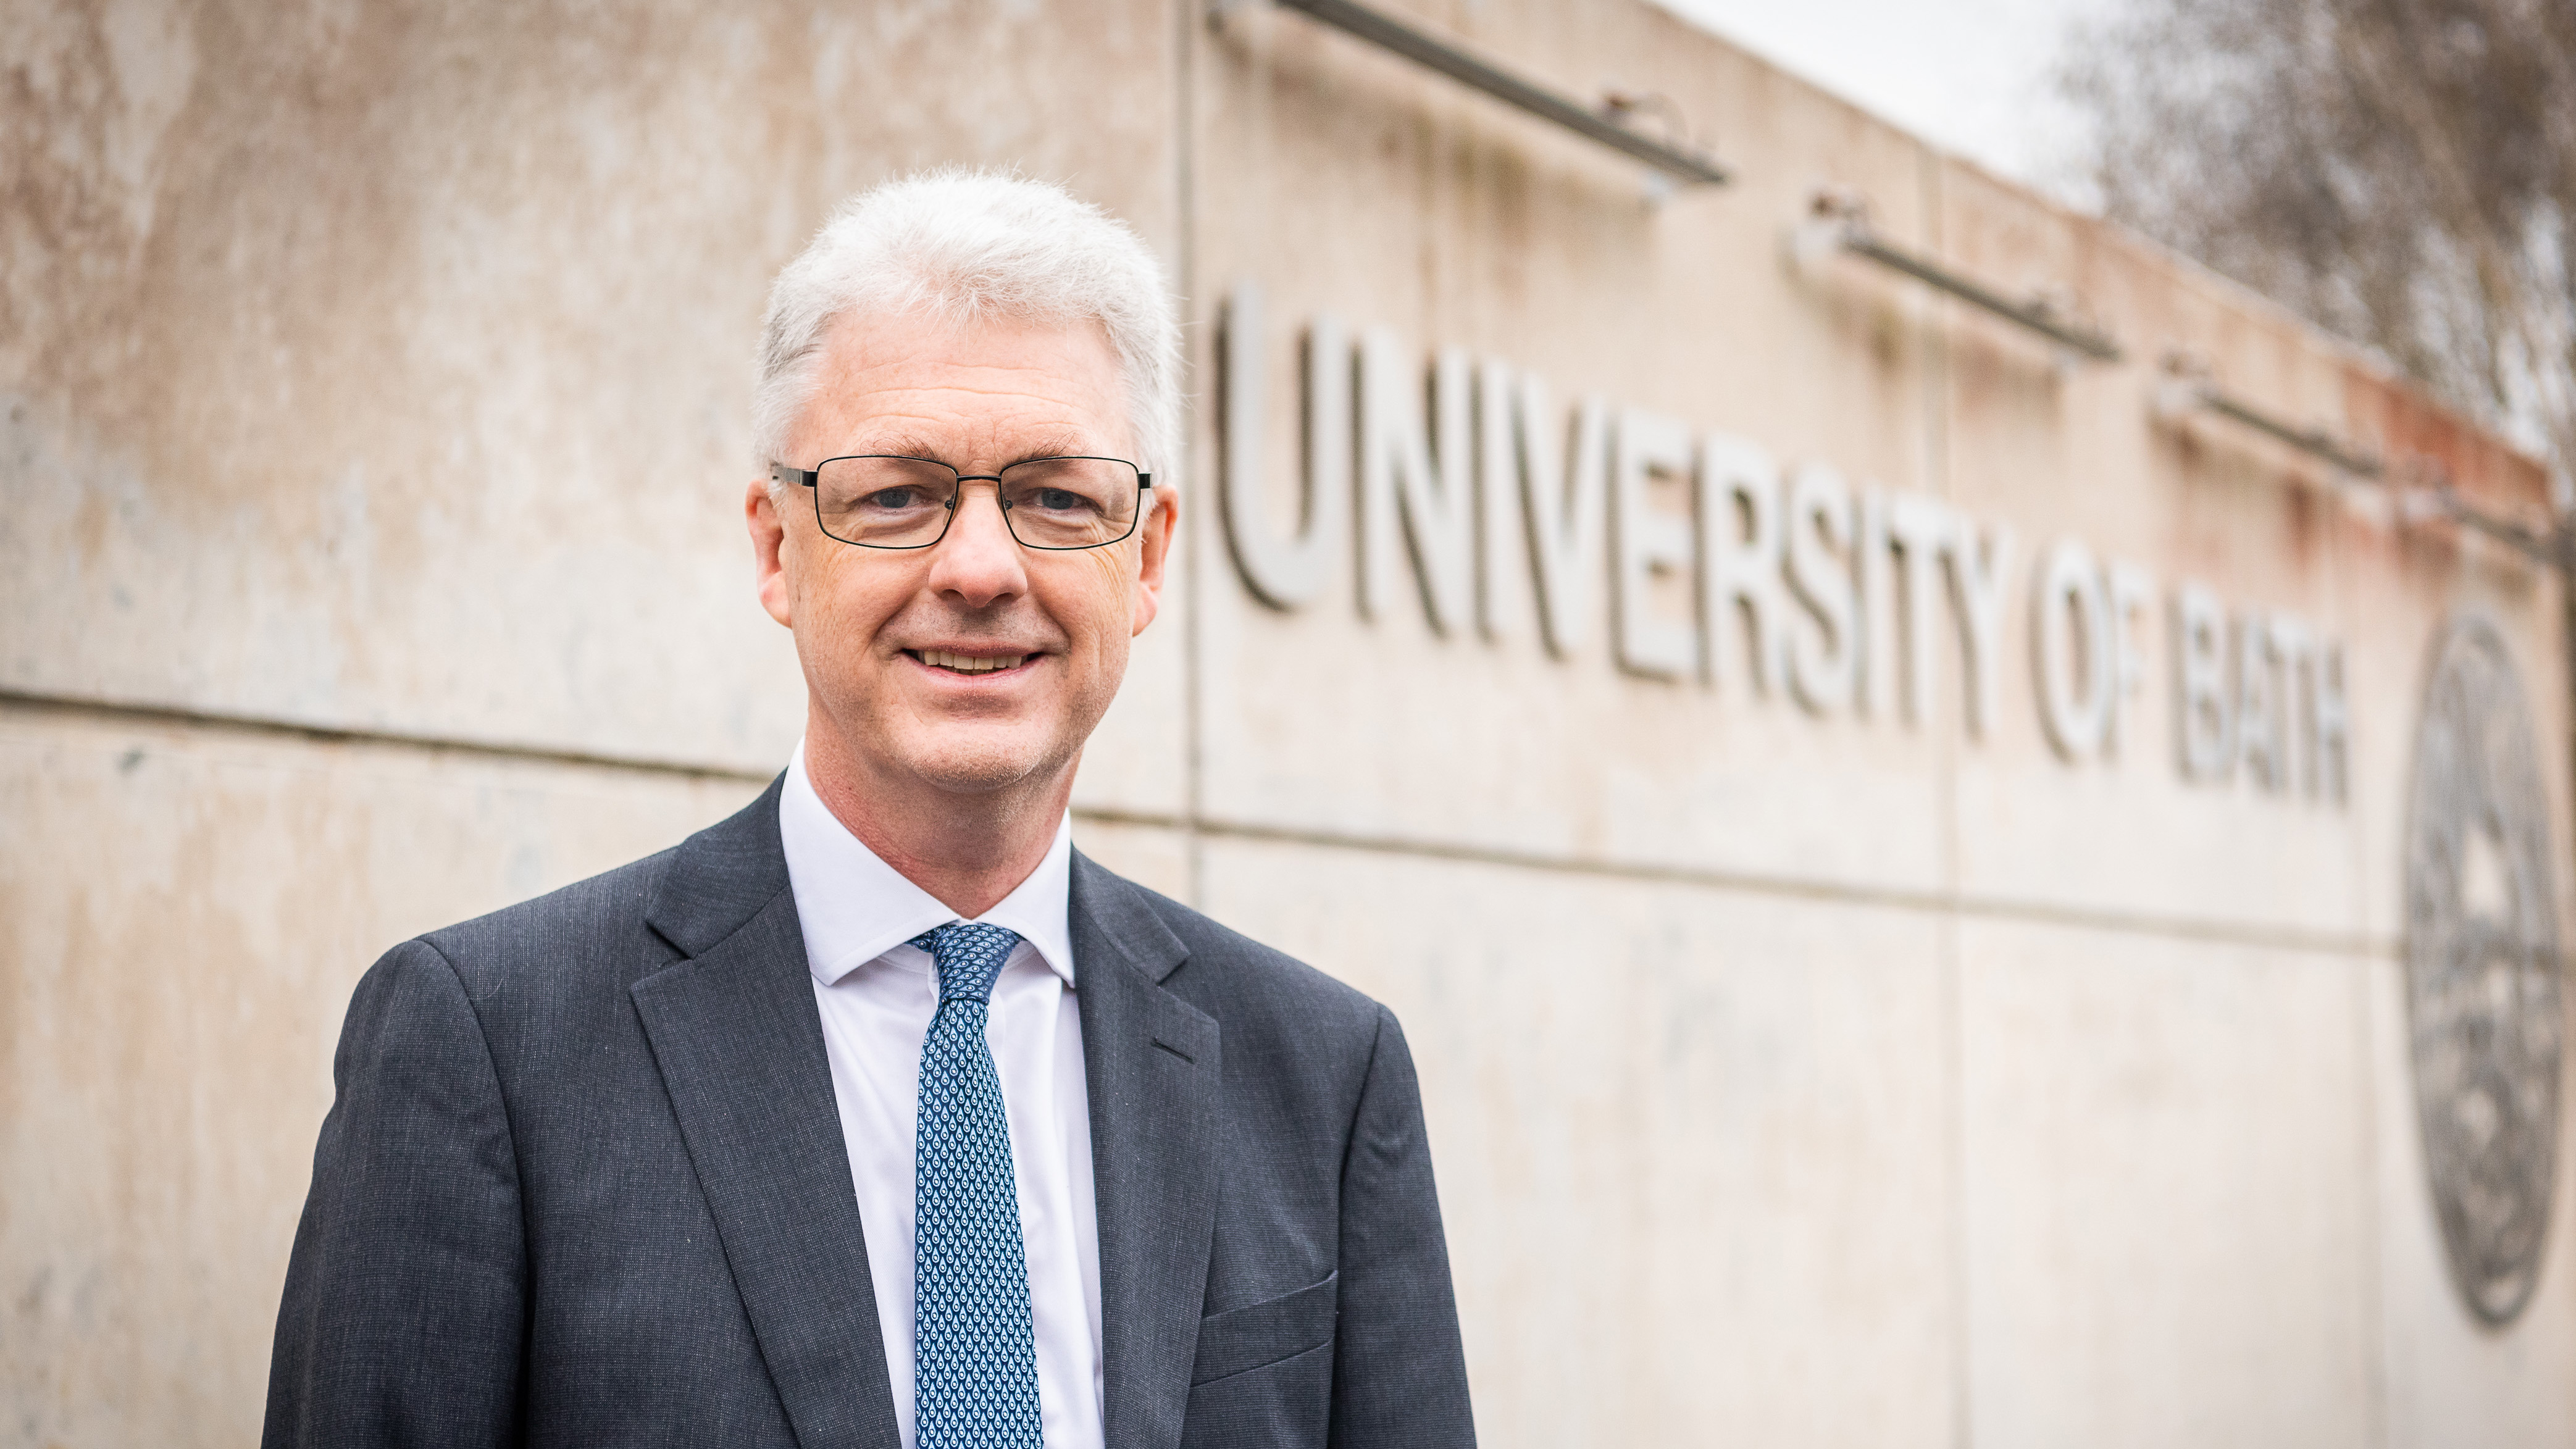 a head and shoulders shot of Ian White, our Vice-Chancellor